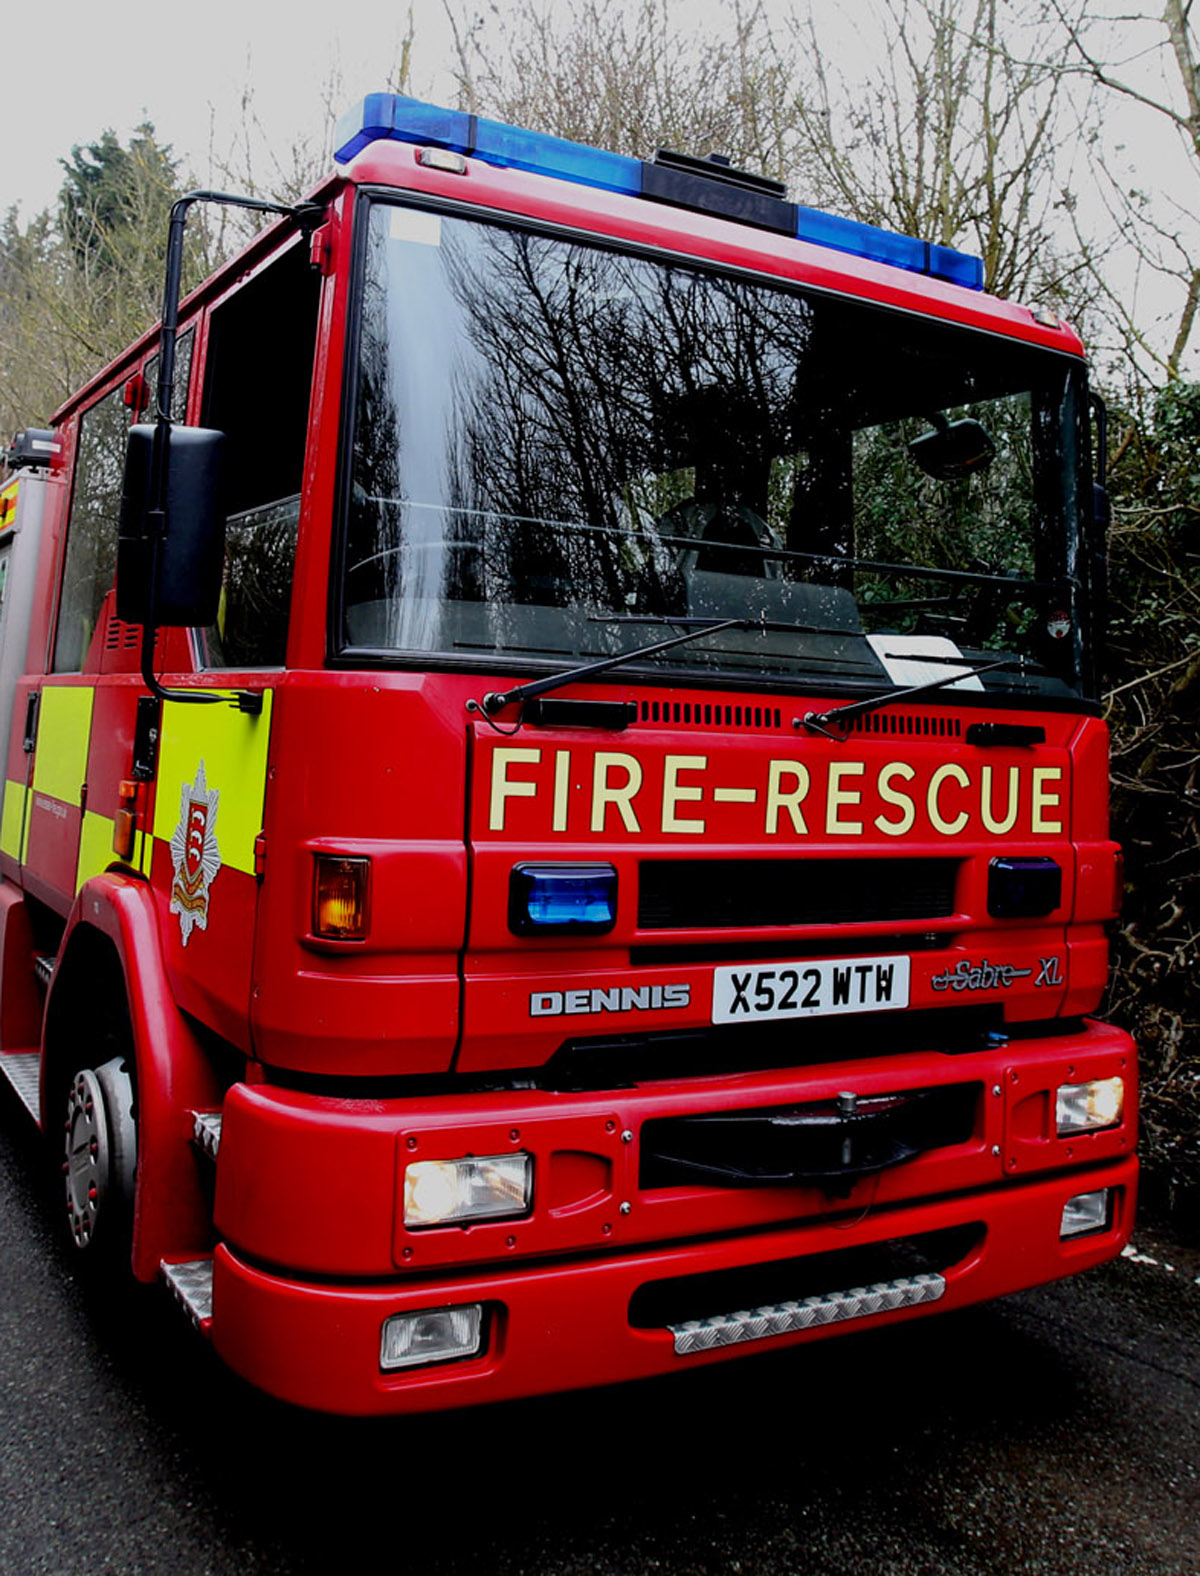 Car Fuse Box On Fire Expert Schematics Diagram Firefighters Called To Put Out At House In Duddon Caught